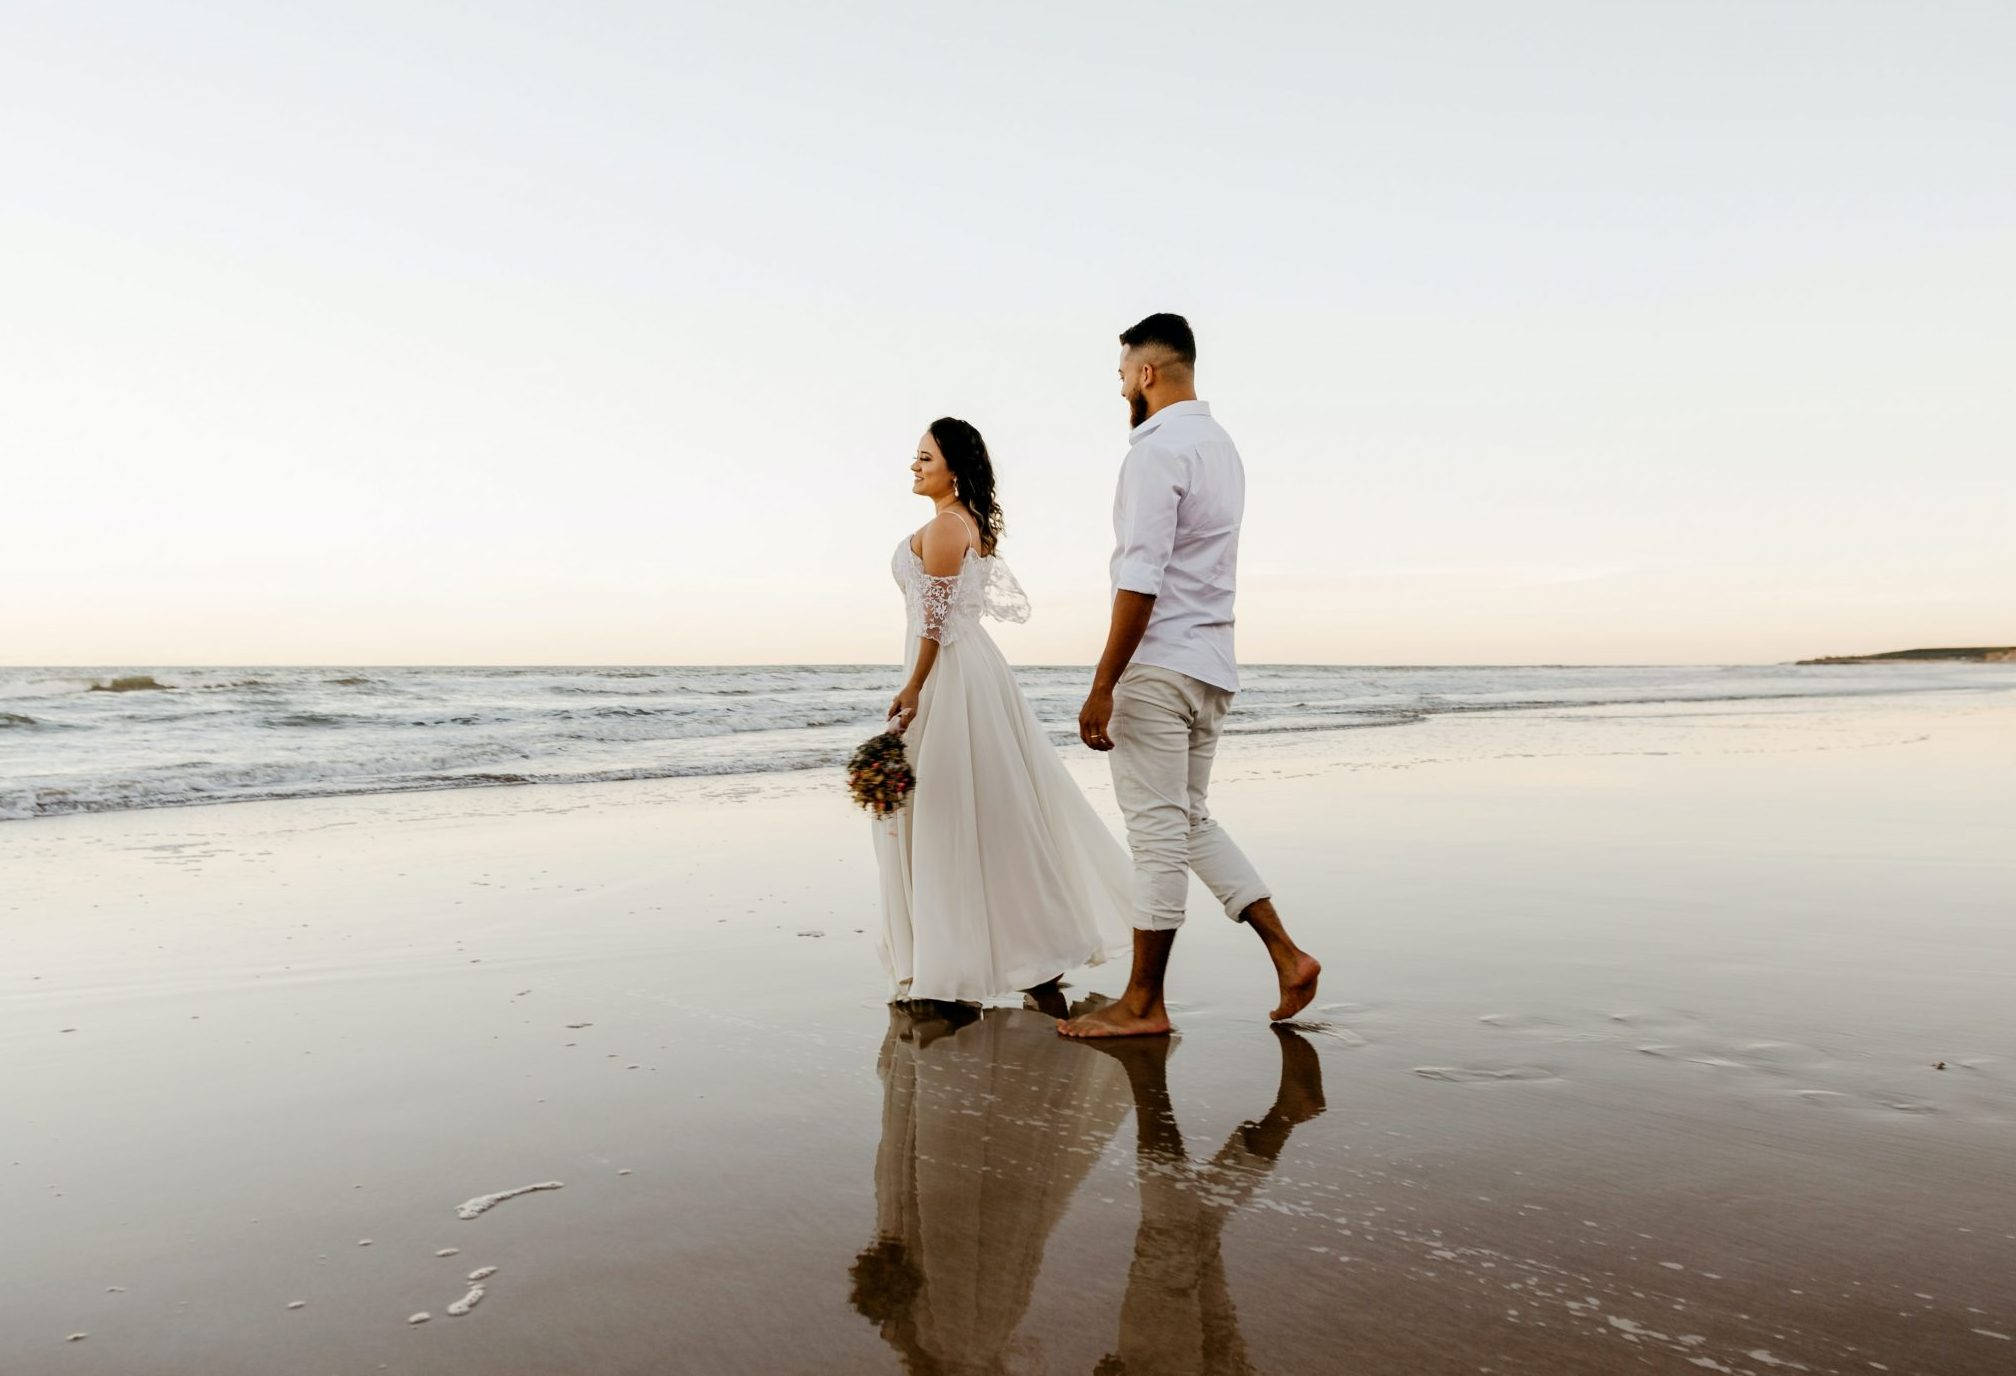 jonathan borba XGBqeQ4UjSk unsplash scaled e1619605749737 Here Are The Cringiest Wedding Moments Ever Arranged By The Happy Couple Copy